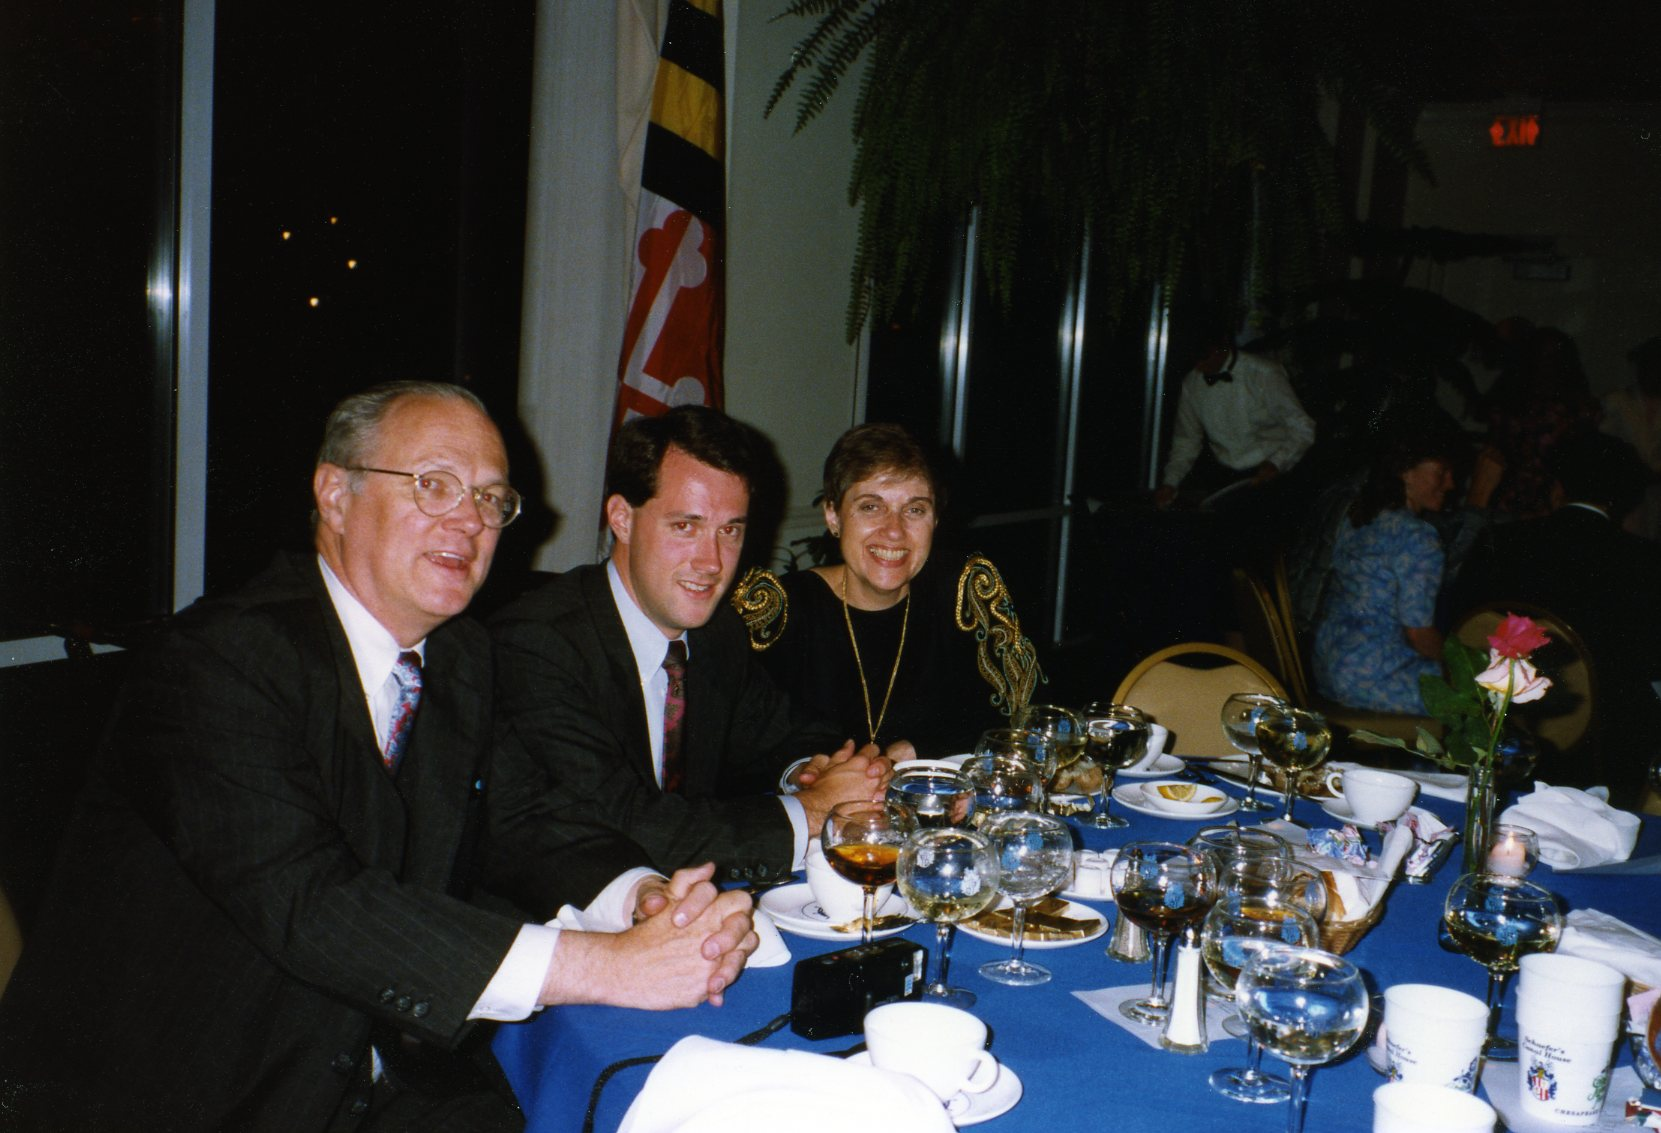 Image: three white people sitting at a restaurant table; man in suit with glasses; younger man also in suit; woman (Mom) in black dress with gold-embroidered sleeves.